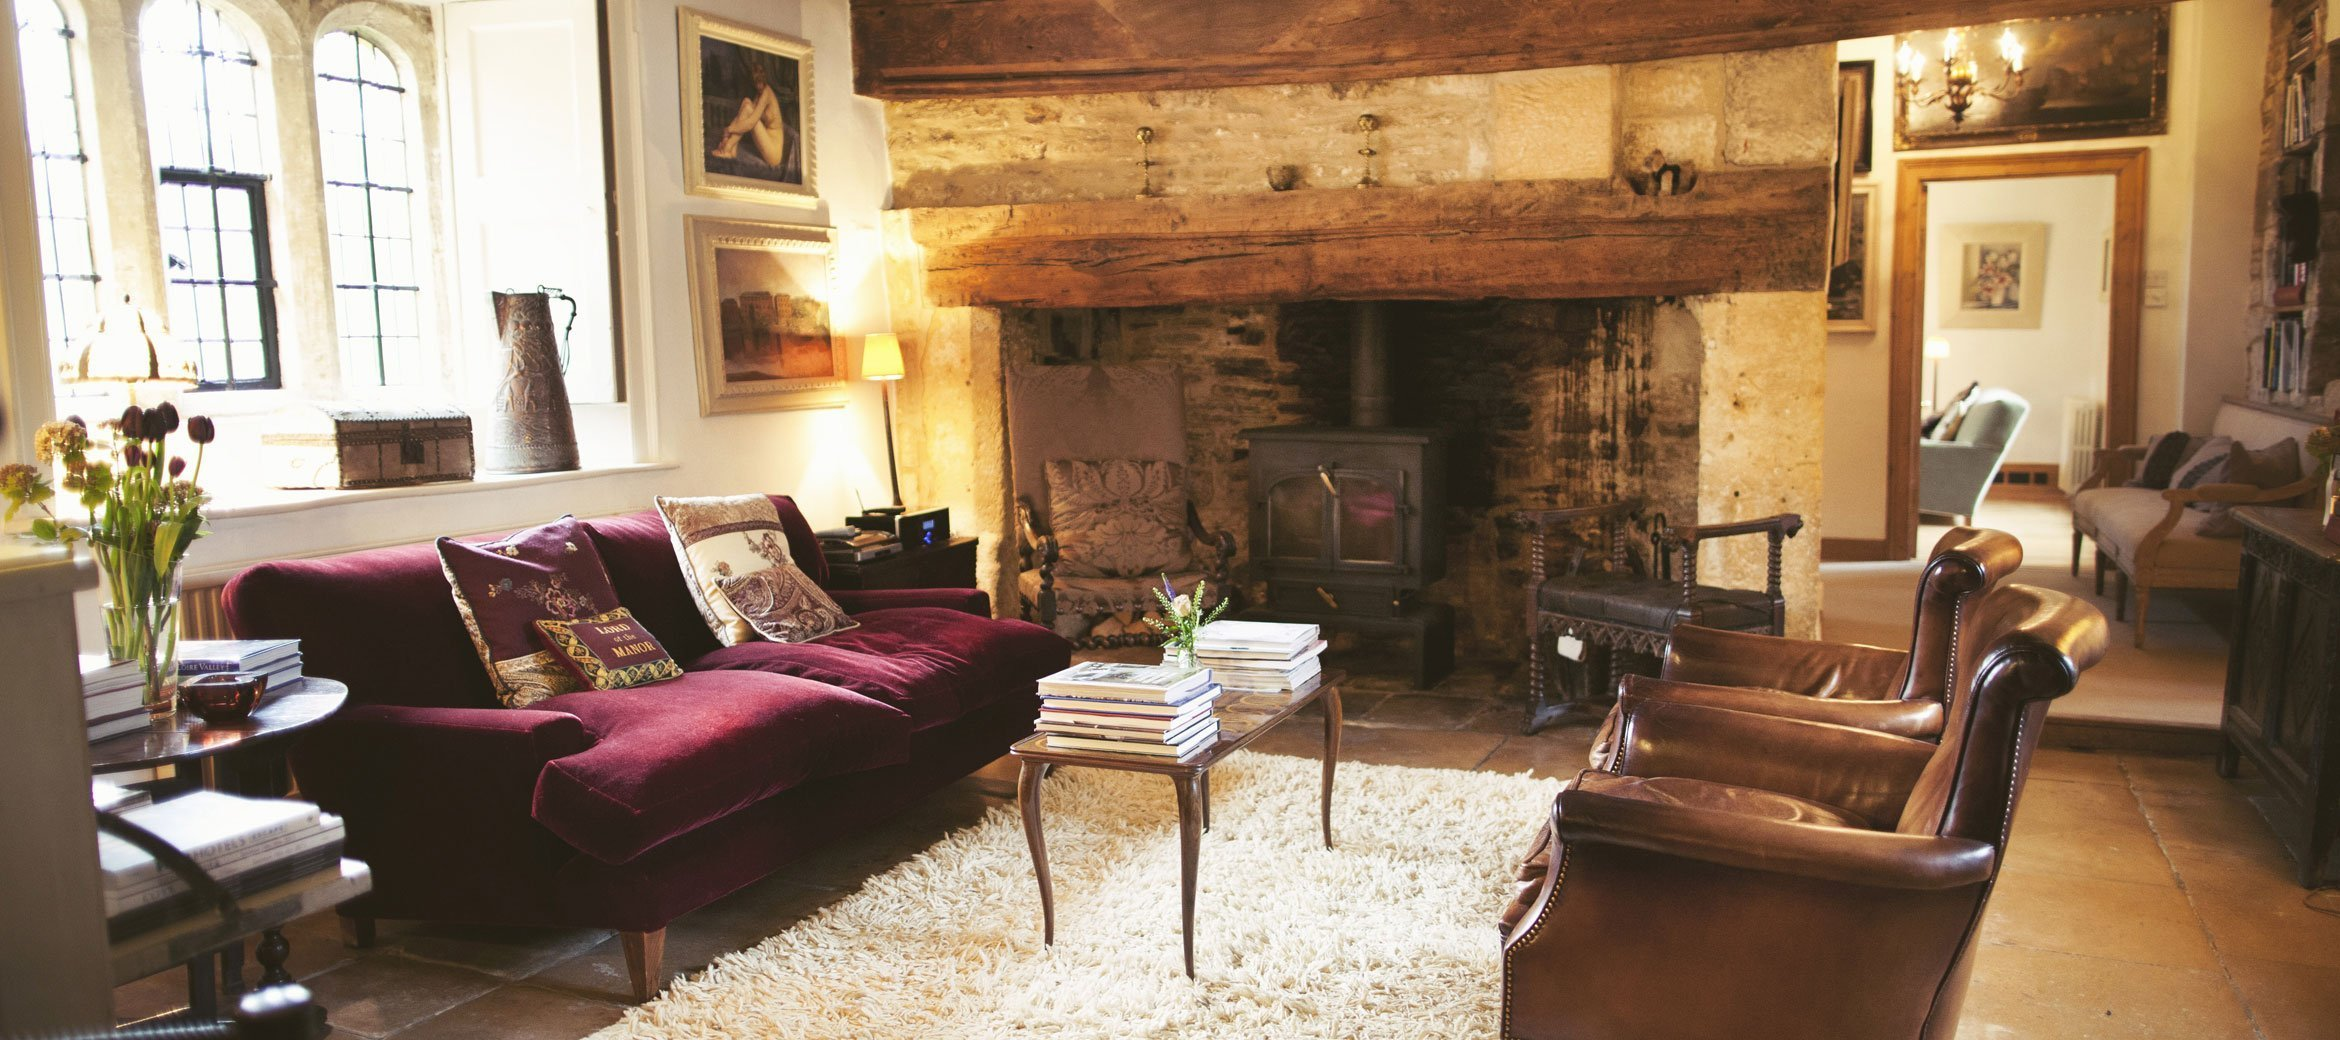 Temple-Guiting-Manor-Sitting-Room